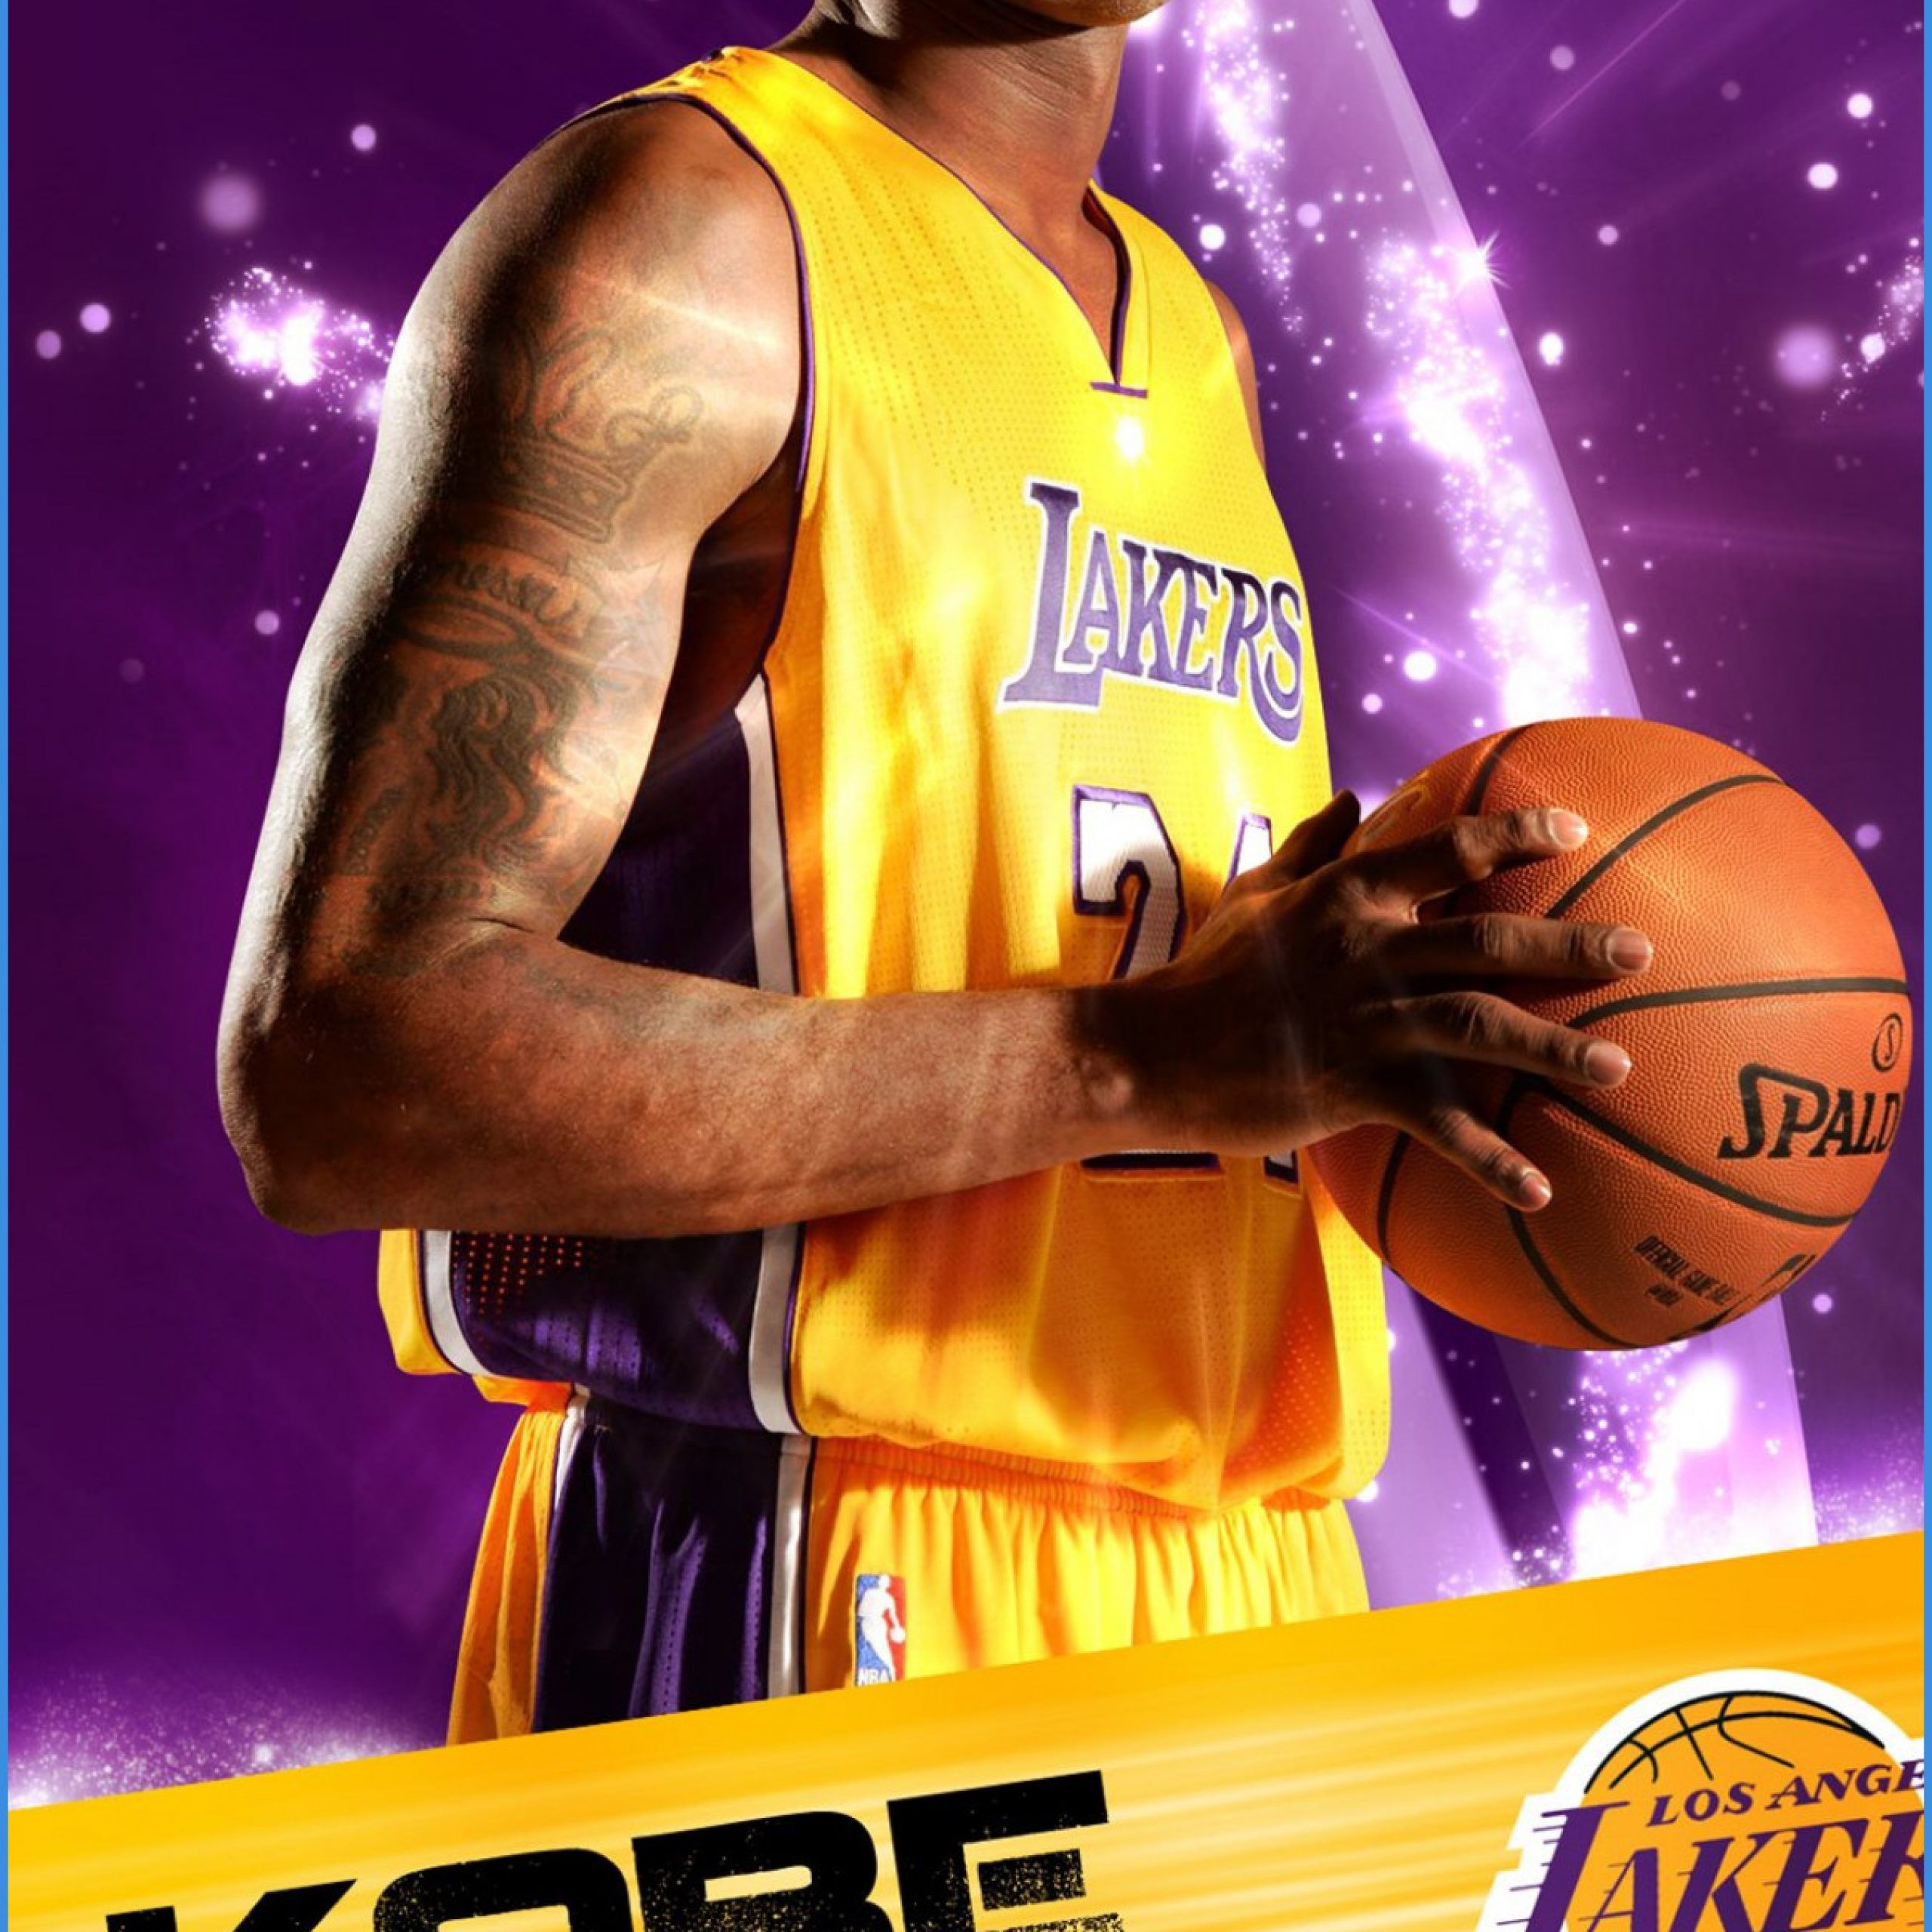 Whats So Trendy About Kobe Bryant Wallpaper Iphone 11 Plus That Everyone Went Crazy Over It K In 2020 Kobe Bryant Wallpaper Kobe Bryant Iphone Wallpaper Kobe Bryant